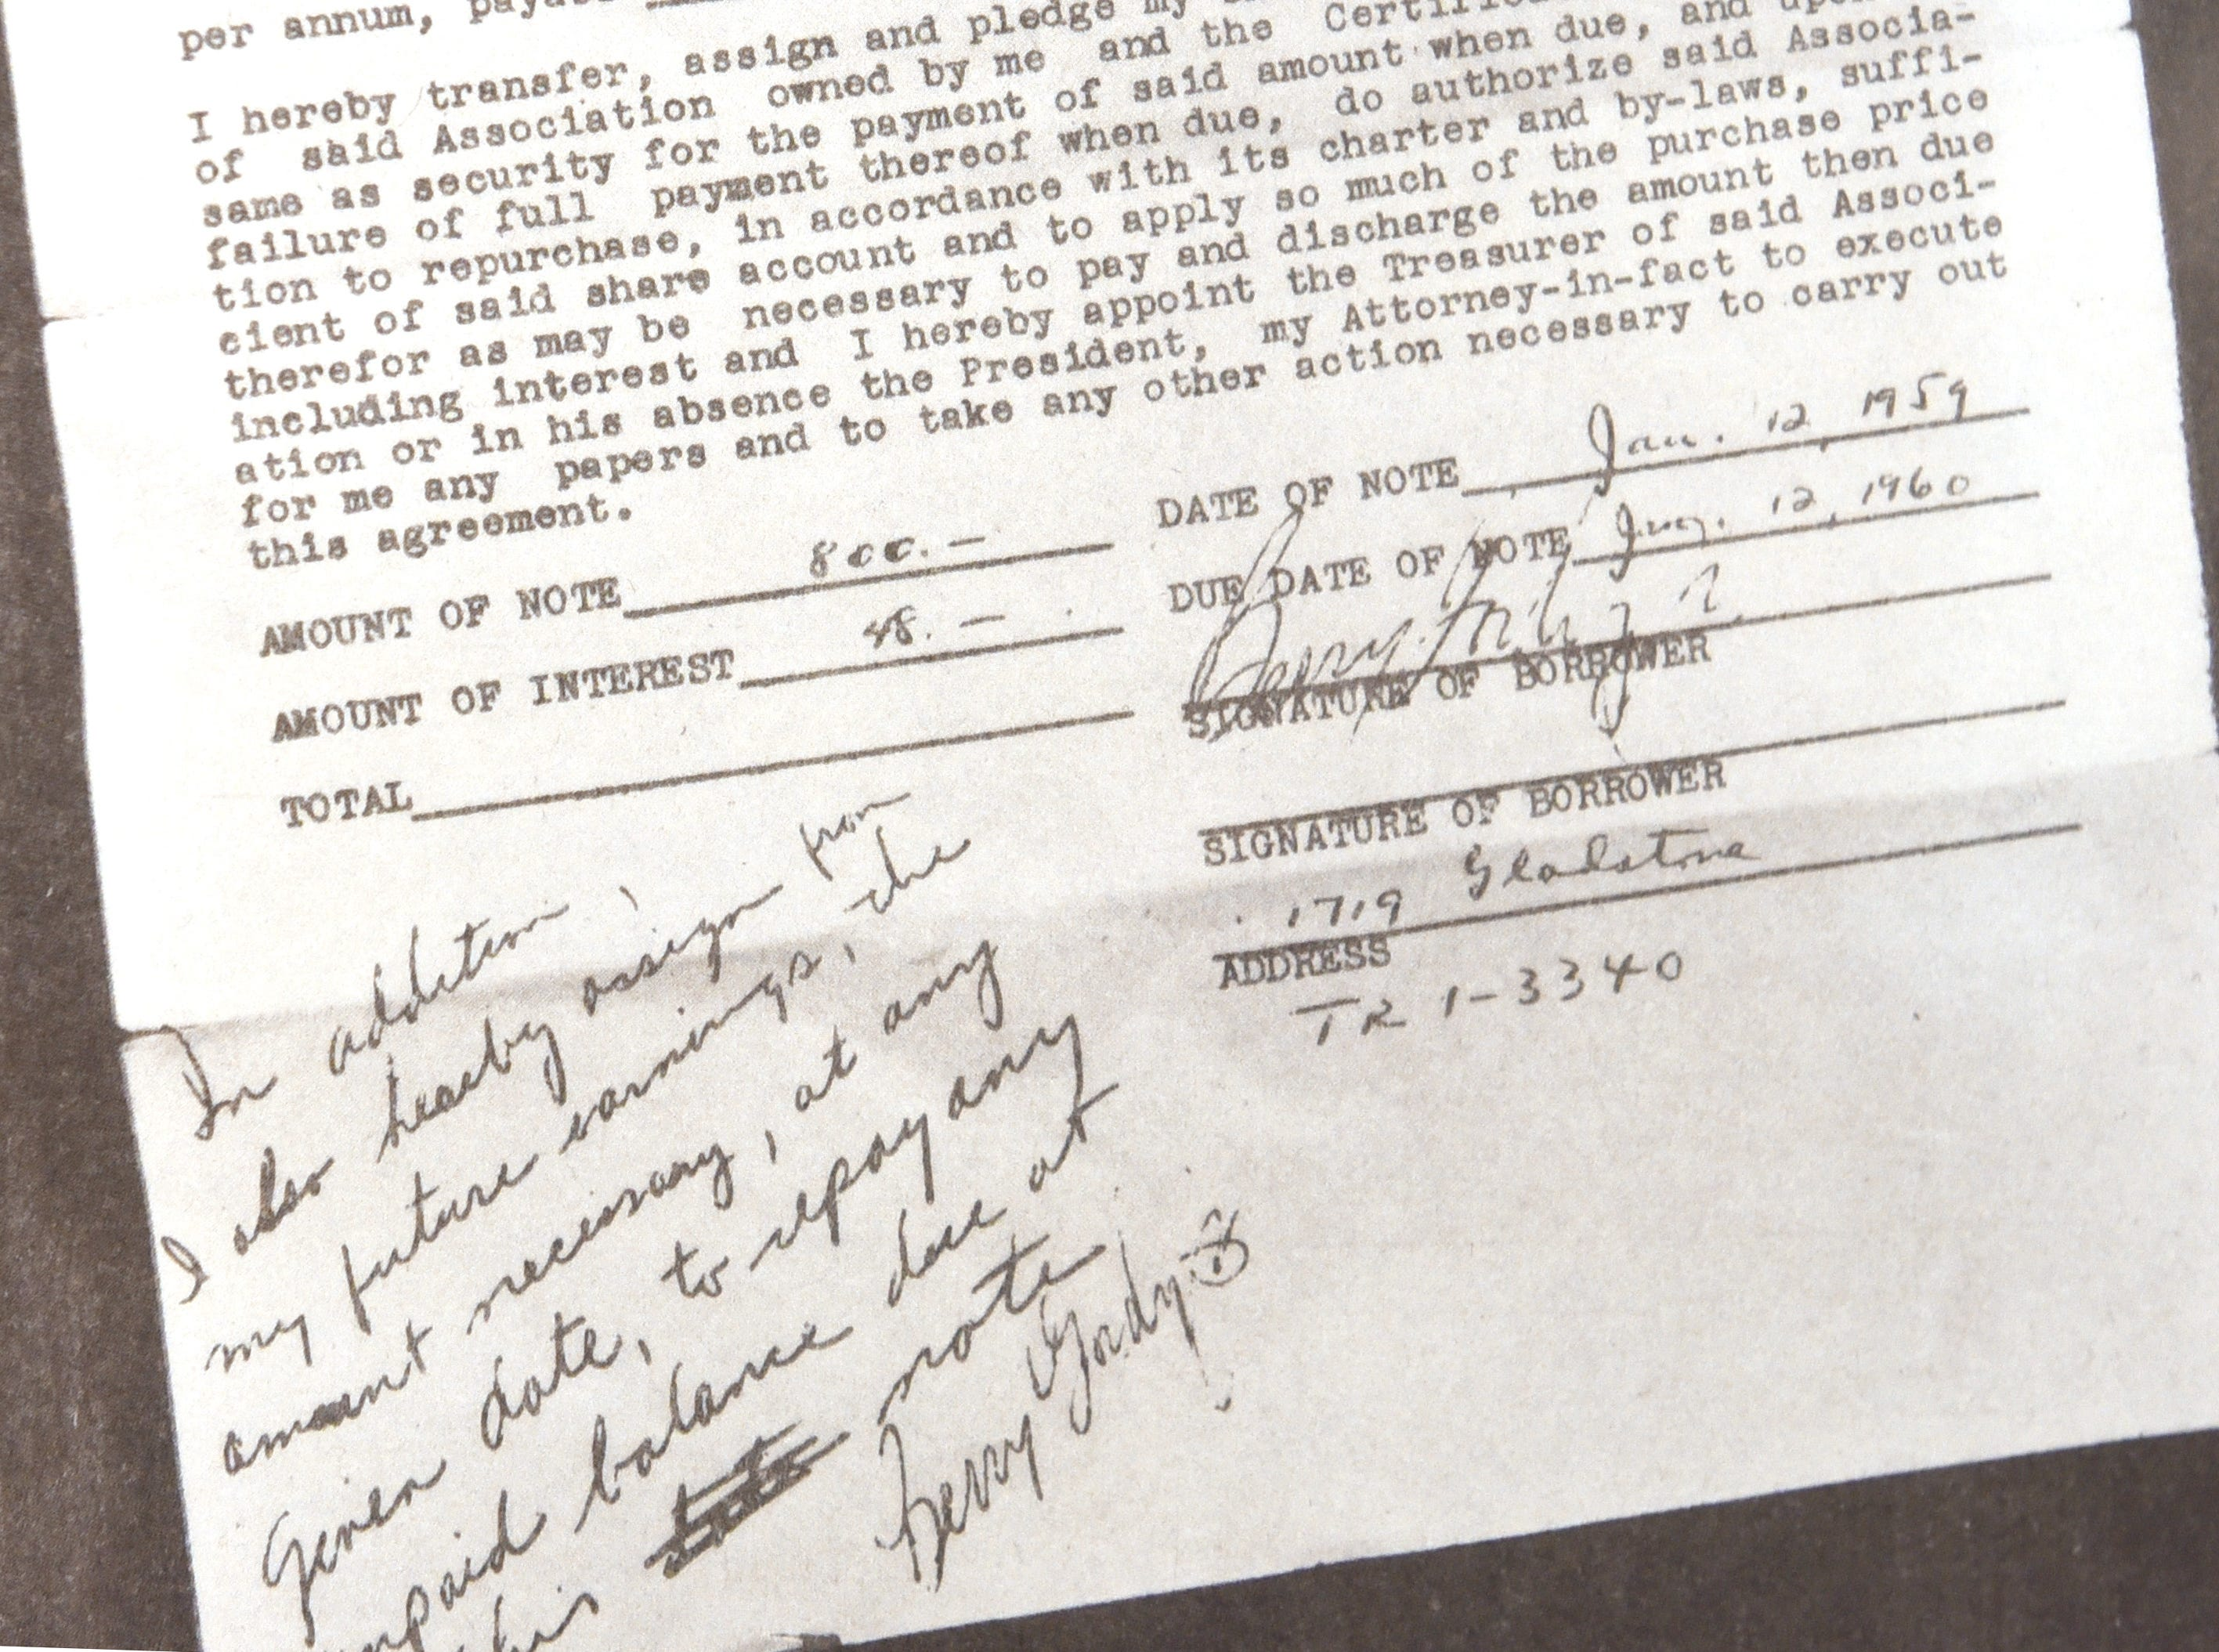 Hand written notes are seen on a document on display at the Motown Museum in honor of its 60th anniversary.